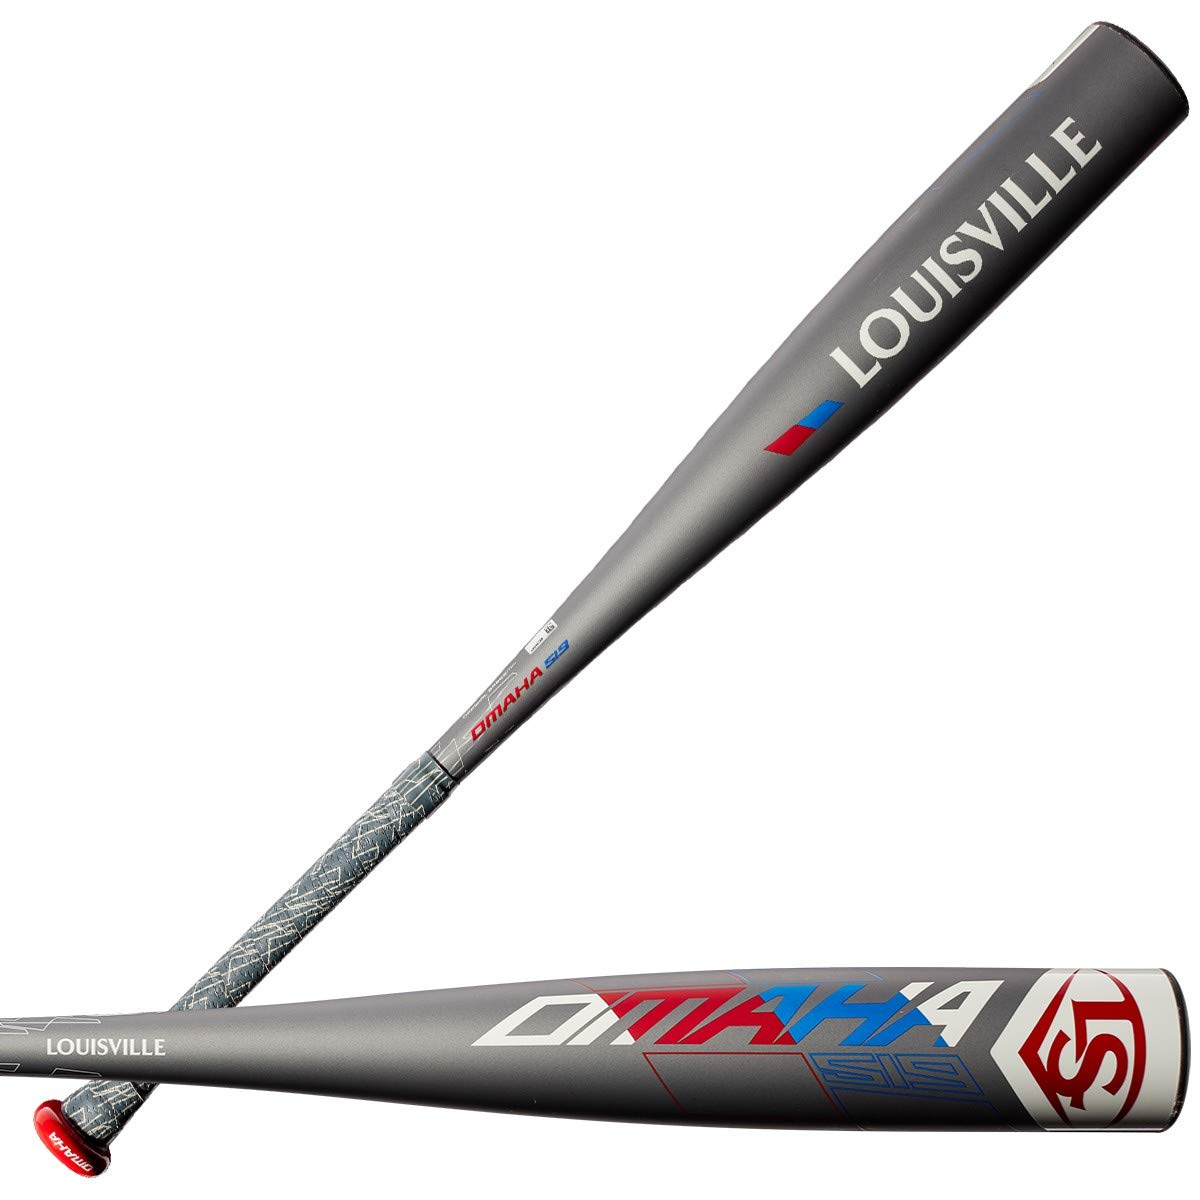 louisville-slugger-2019-omaha-519-5-2-5-8-senior-league-baseball-bat-32-inch-27-oz WTLSLO519B532 Louisville 887768729950 Meets USSSA 1.15 bpf standard; 7/8 inch tapered handle 1-piece ST